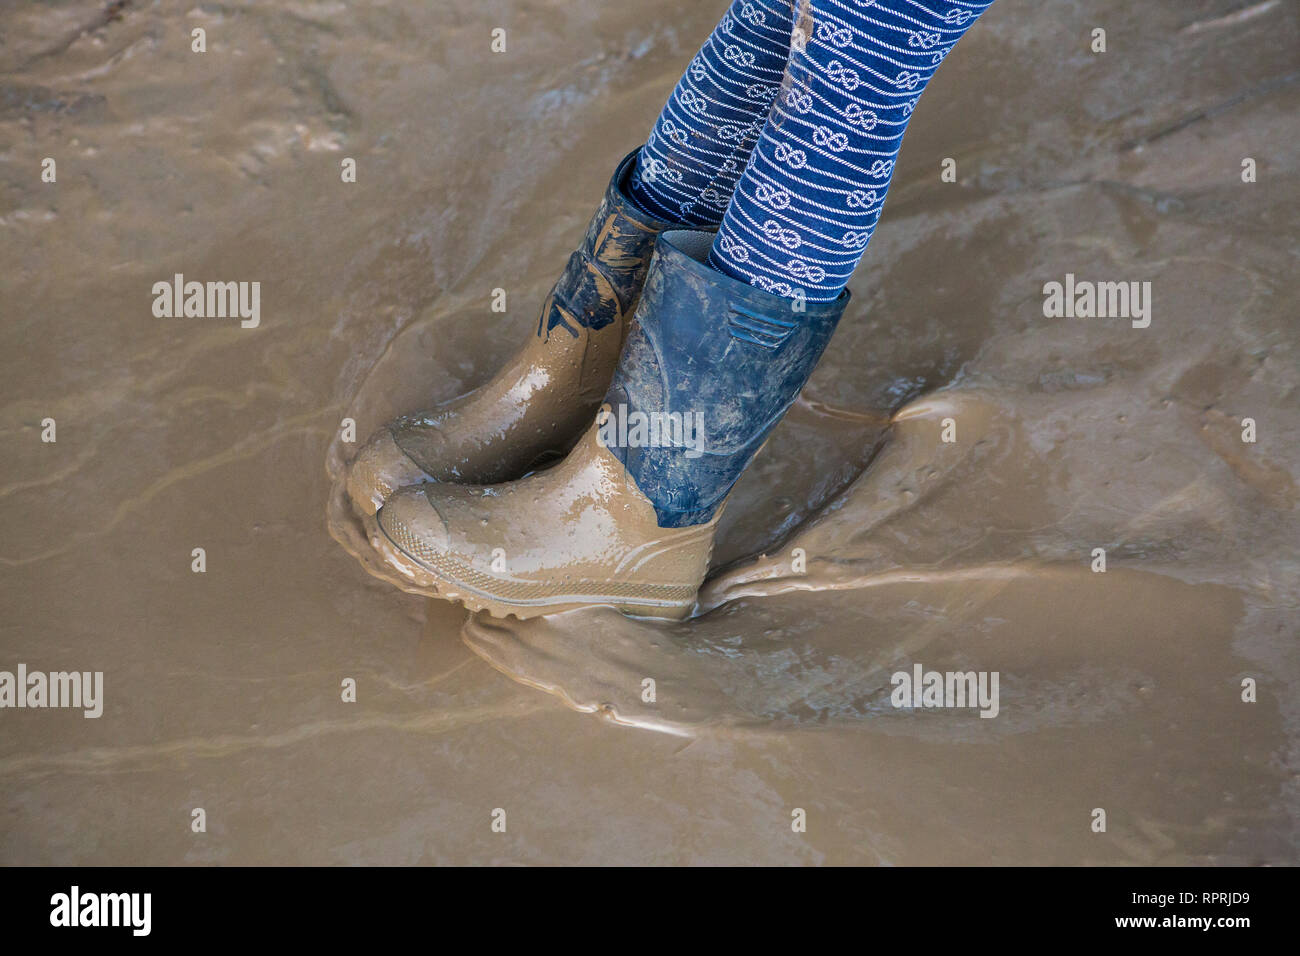 Muddy wellies in a muddy puddle, Sussex, UK - Stock Image